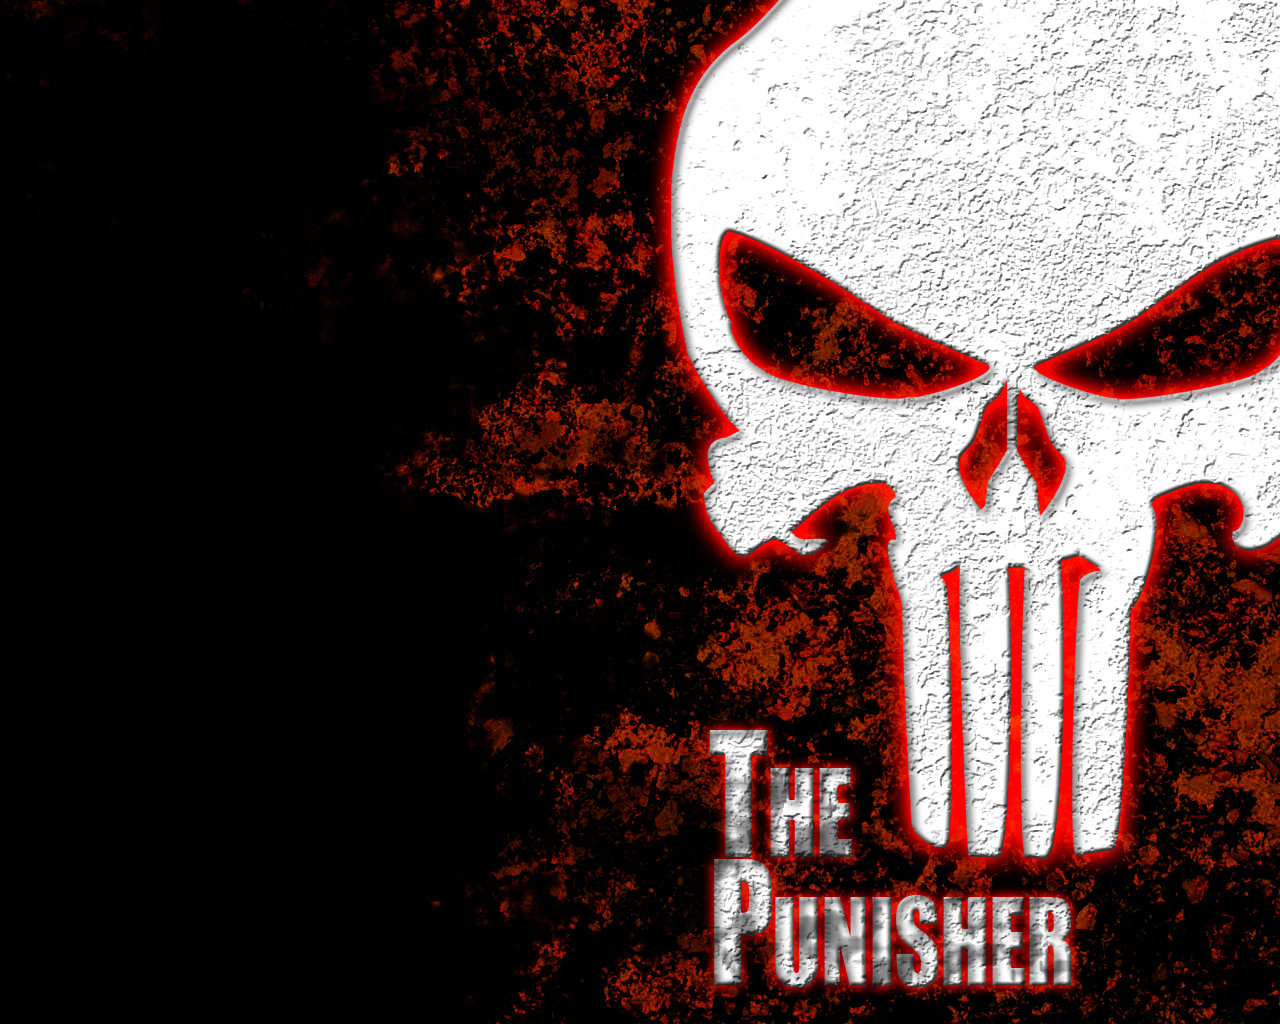 Wallpaper - The Punisher by the-system on DeviantArt